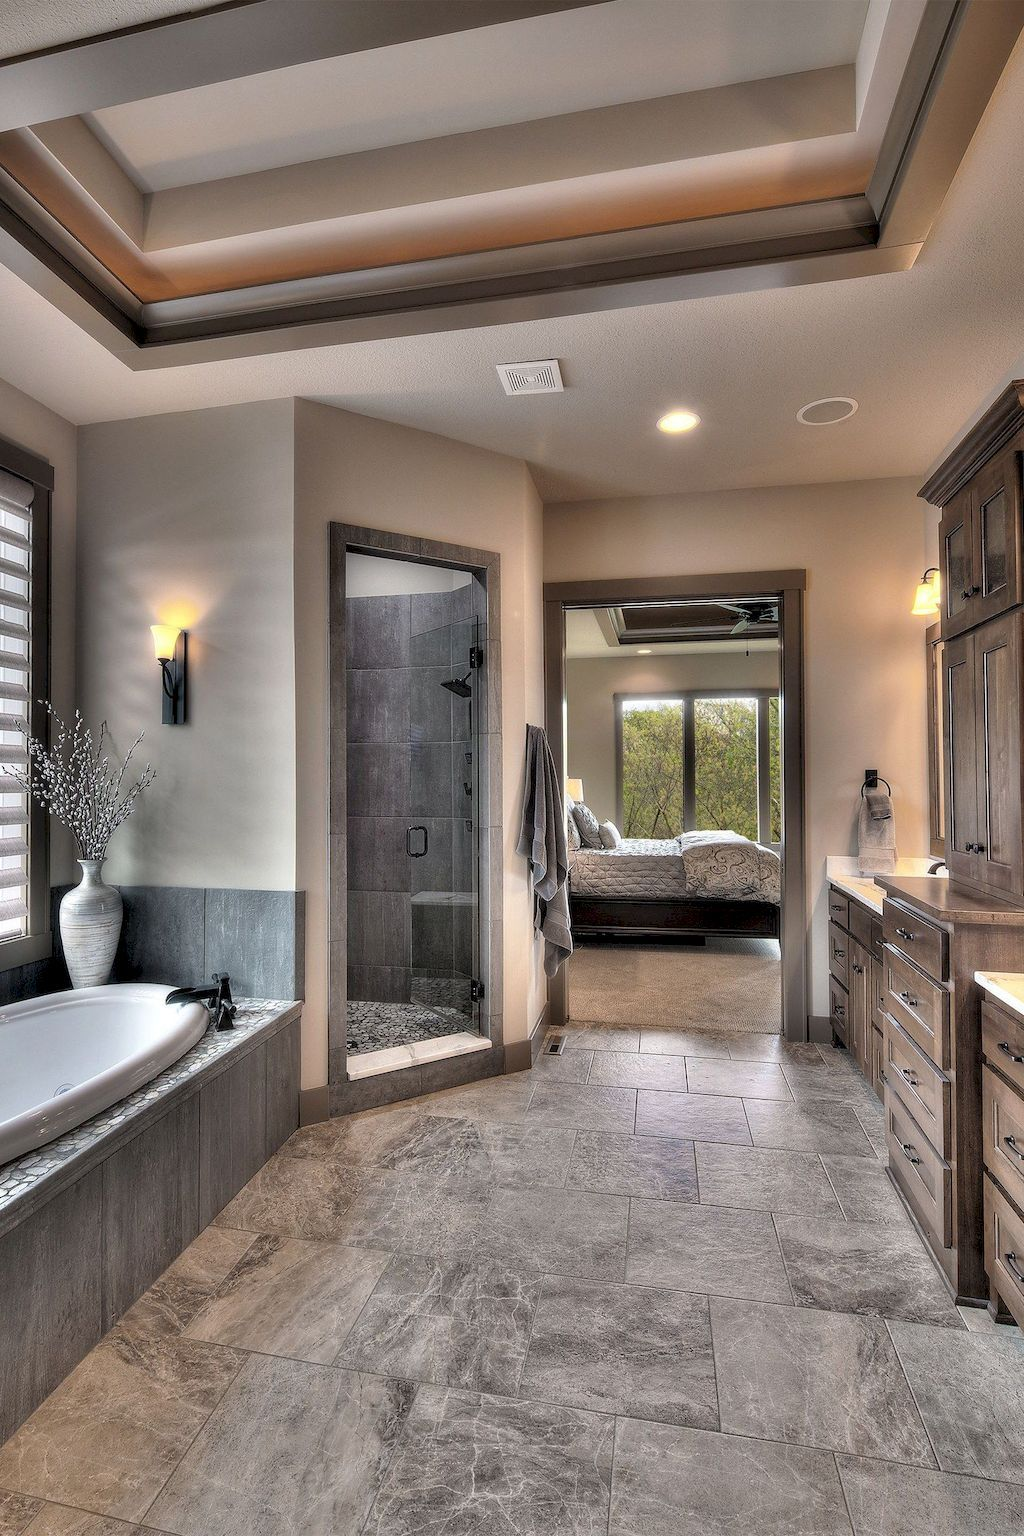 Pin By Bickimer Homes On Model Homes: Pin By Amanda Centeno On Dream Home